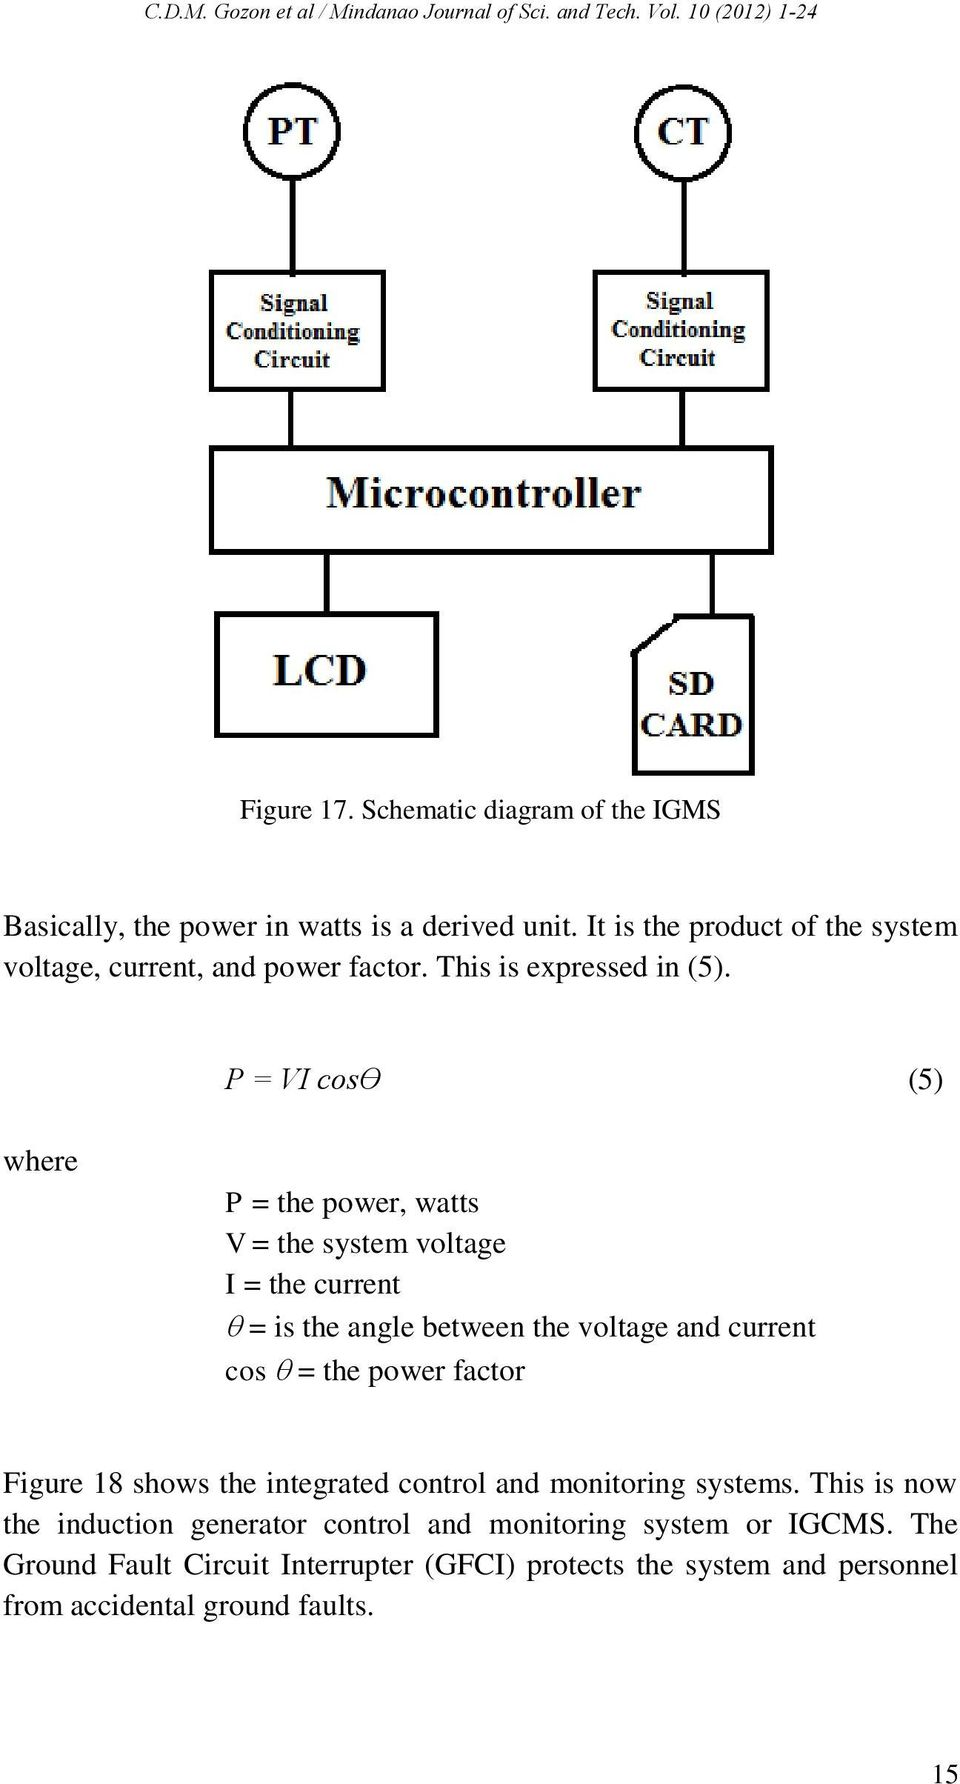 Induction Generator Control And Monitoring System For Micro Hydro Circuit Breaker Moreover Ground Fault Interrupter Gfci P Vi Cos 5 Where The Power Watts V